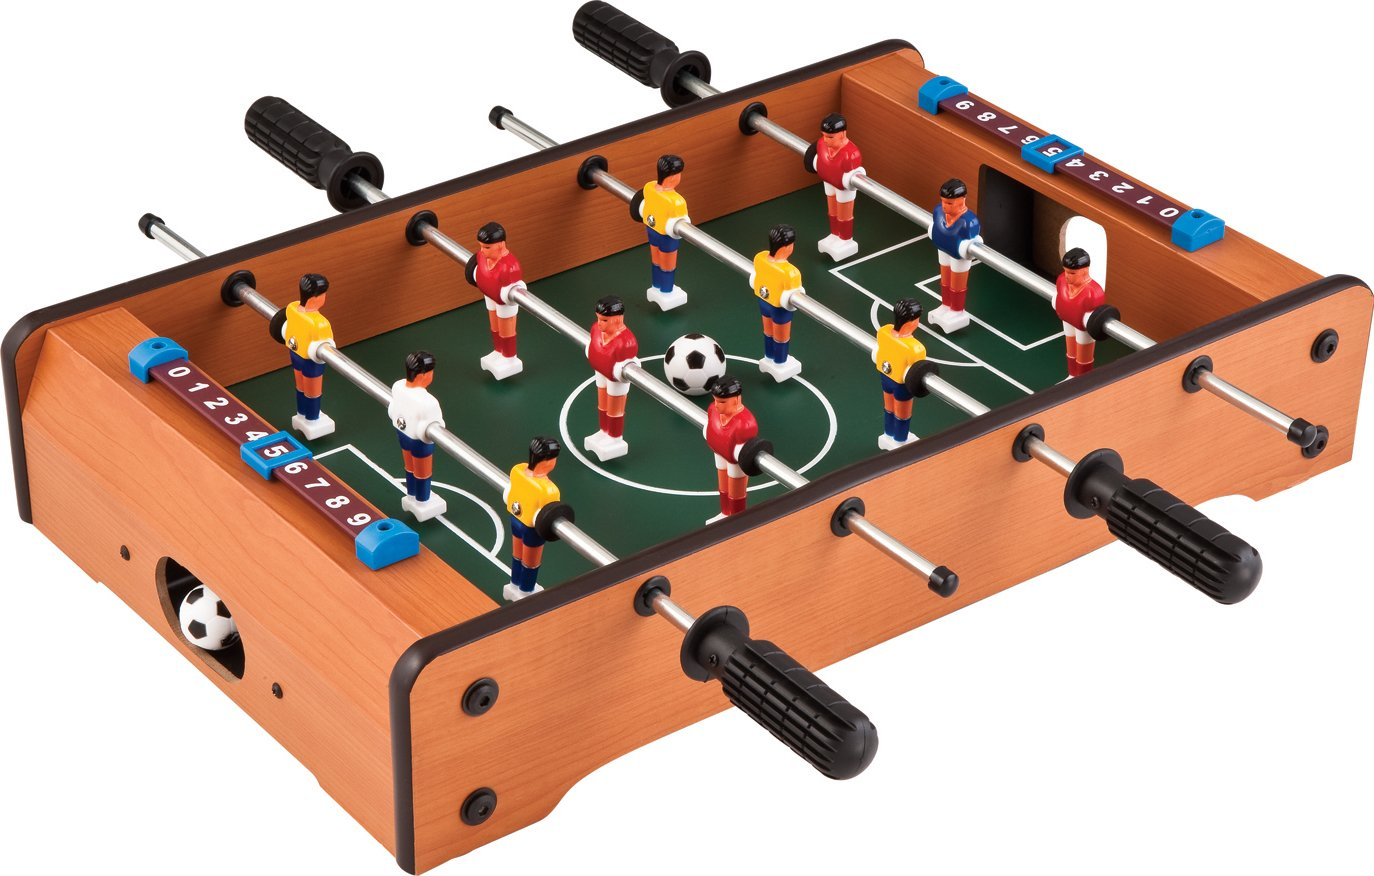 Mainstreet Classics 20-Inch Table Top Foosball/Soccer Game by Mainstreet Classics by GLD Products